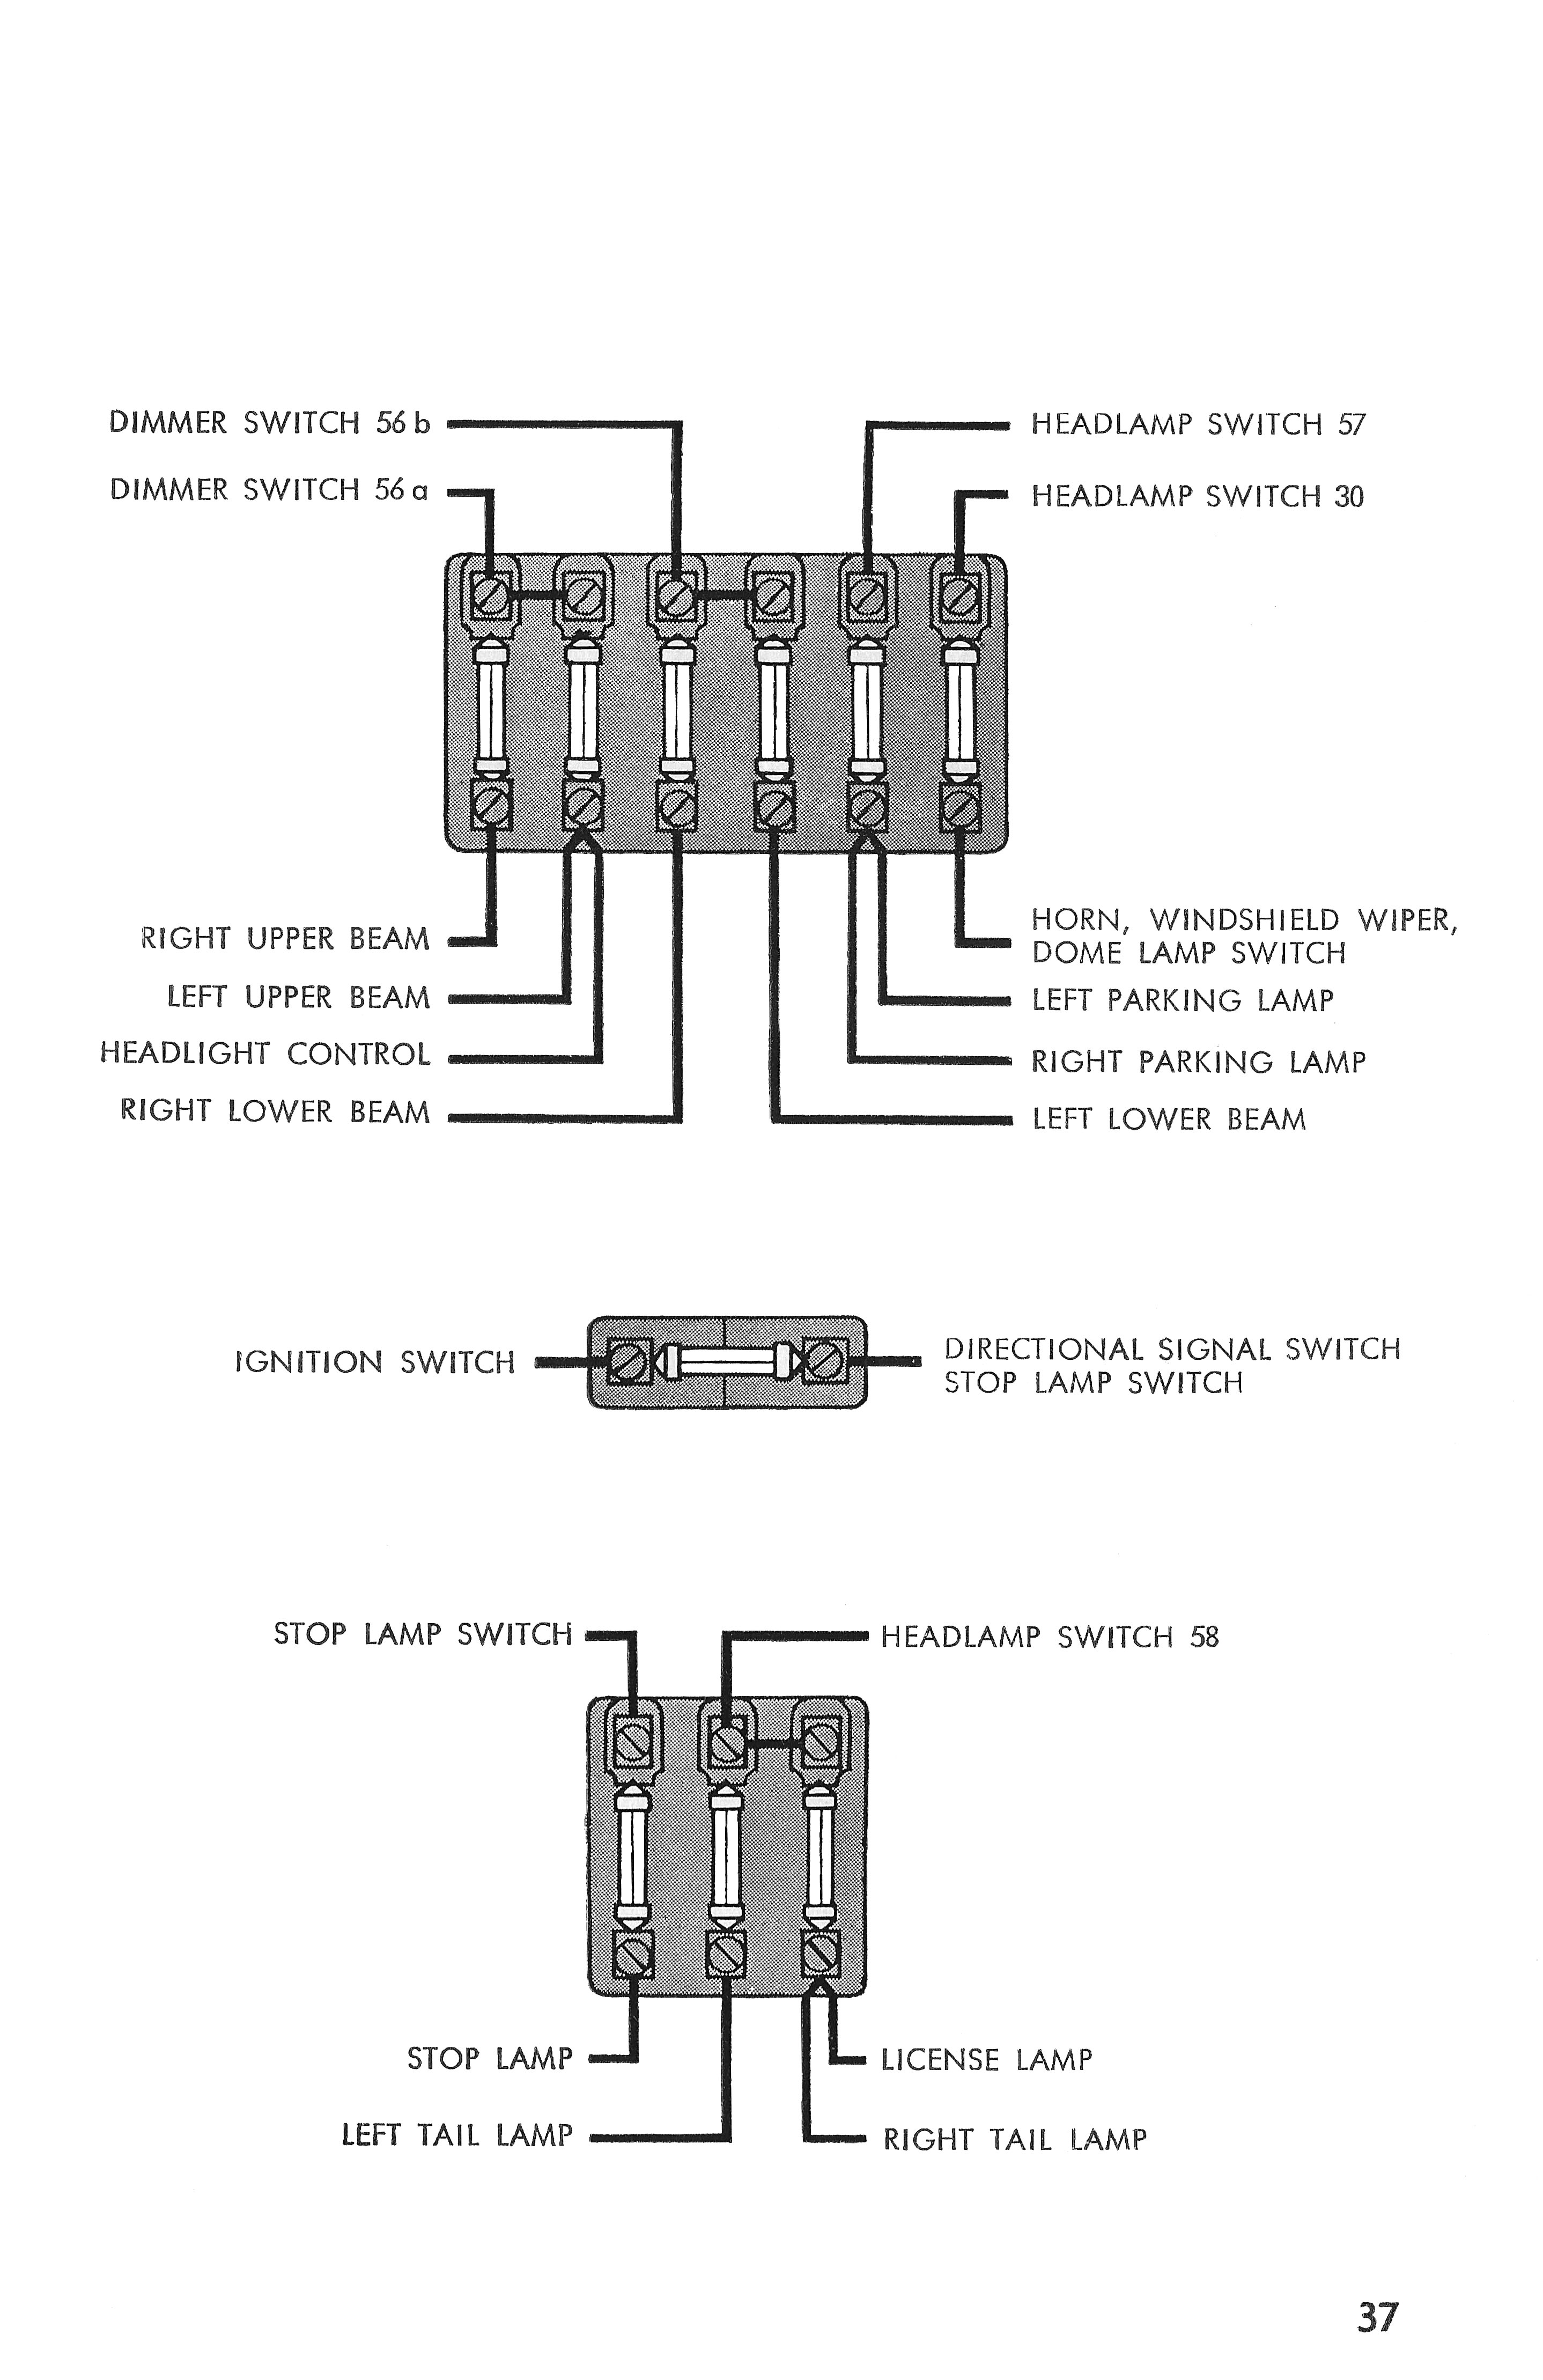 Headlight Dimmer Switch Wiring Diagram For Saleexpert Me